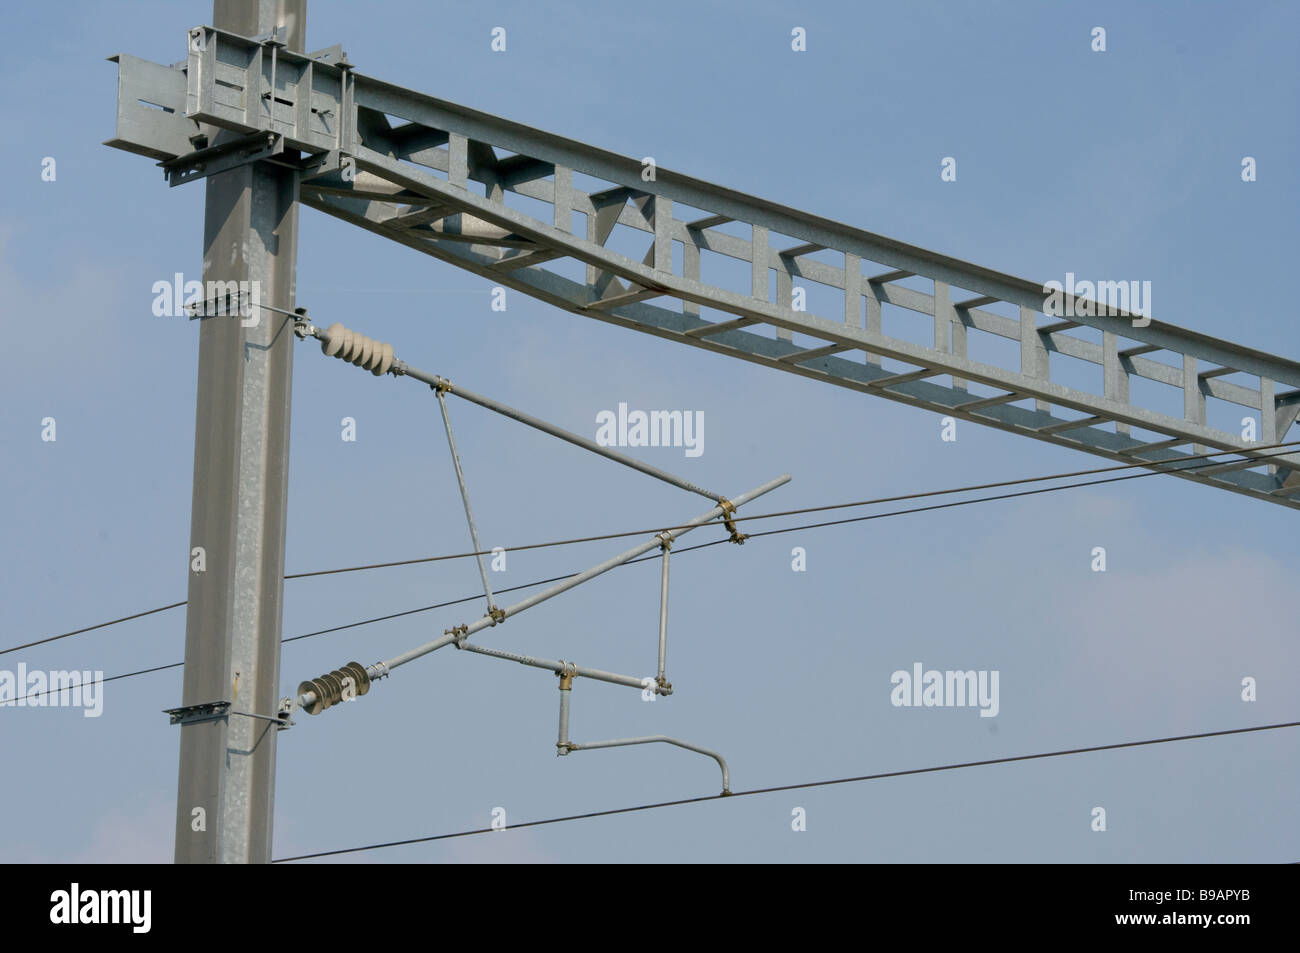 Suspended Overhead Electric Power Train Lines cables - Stock Image